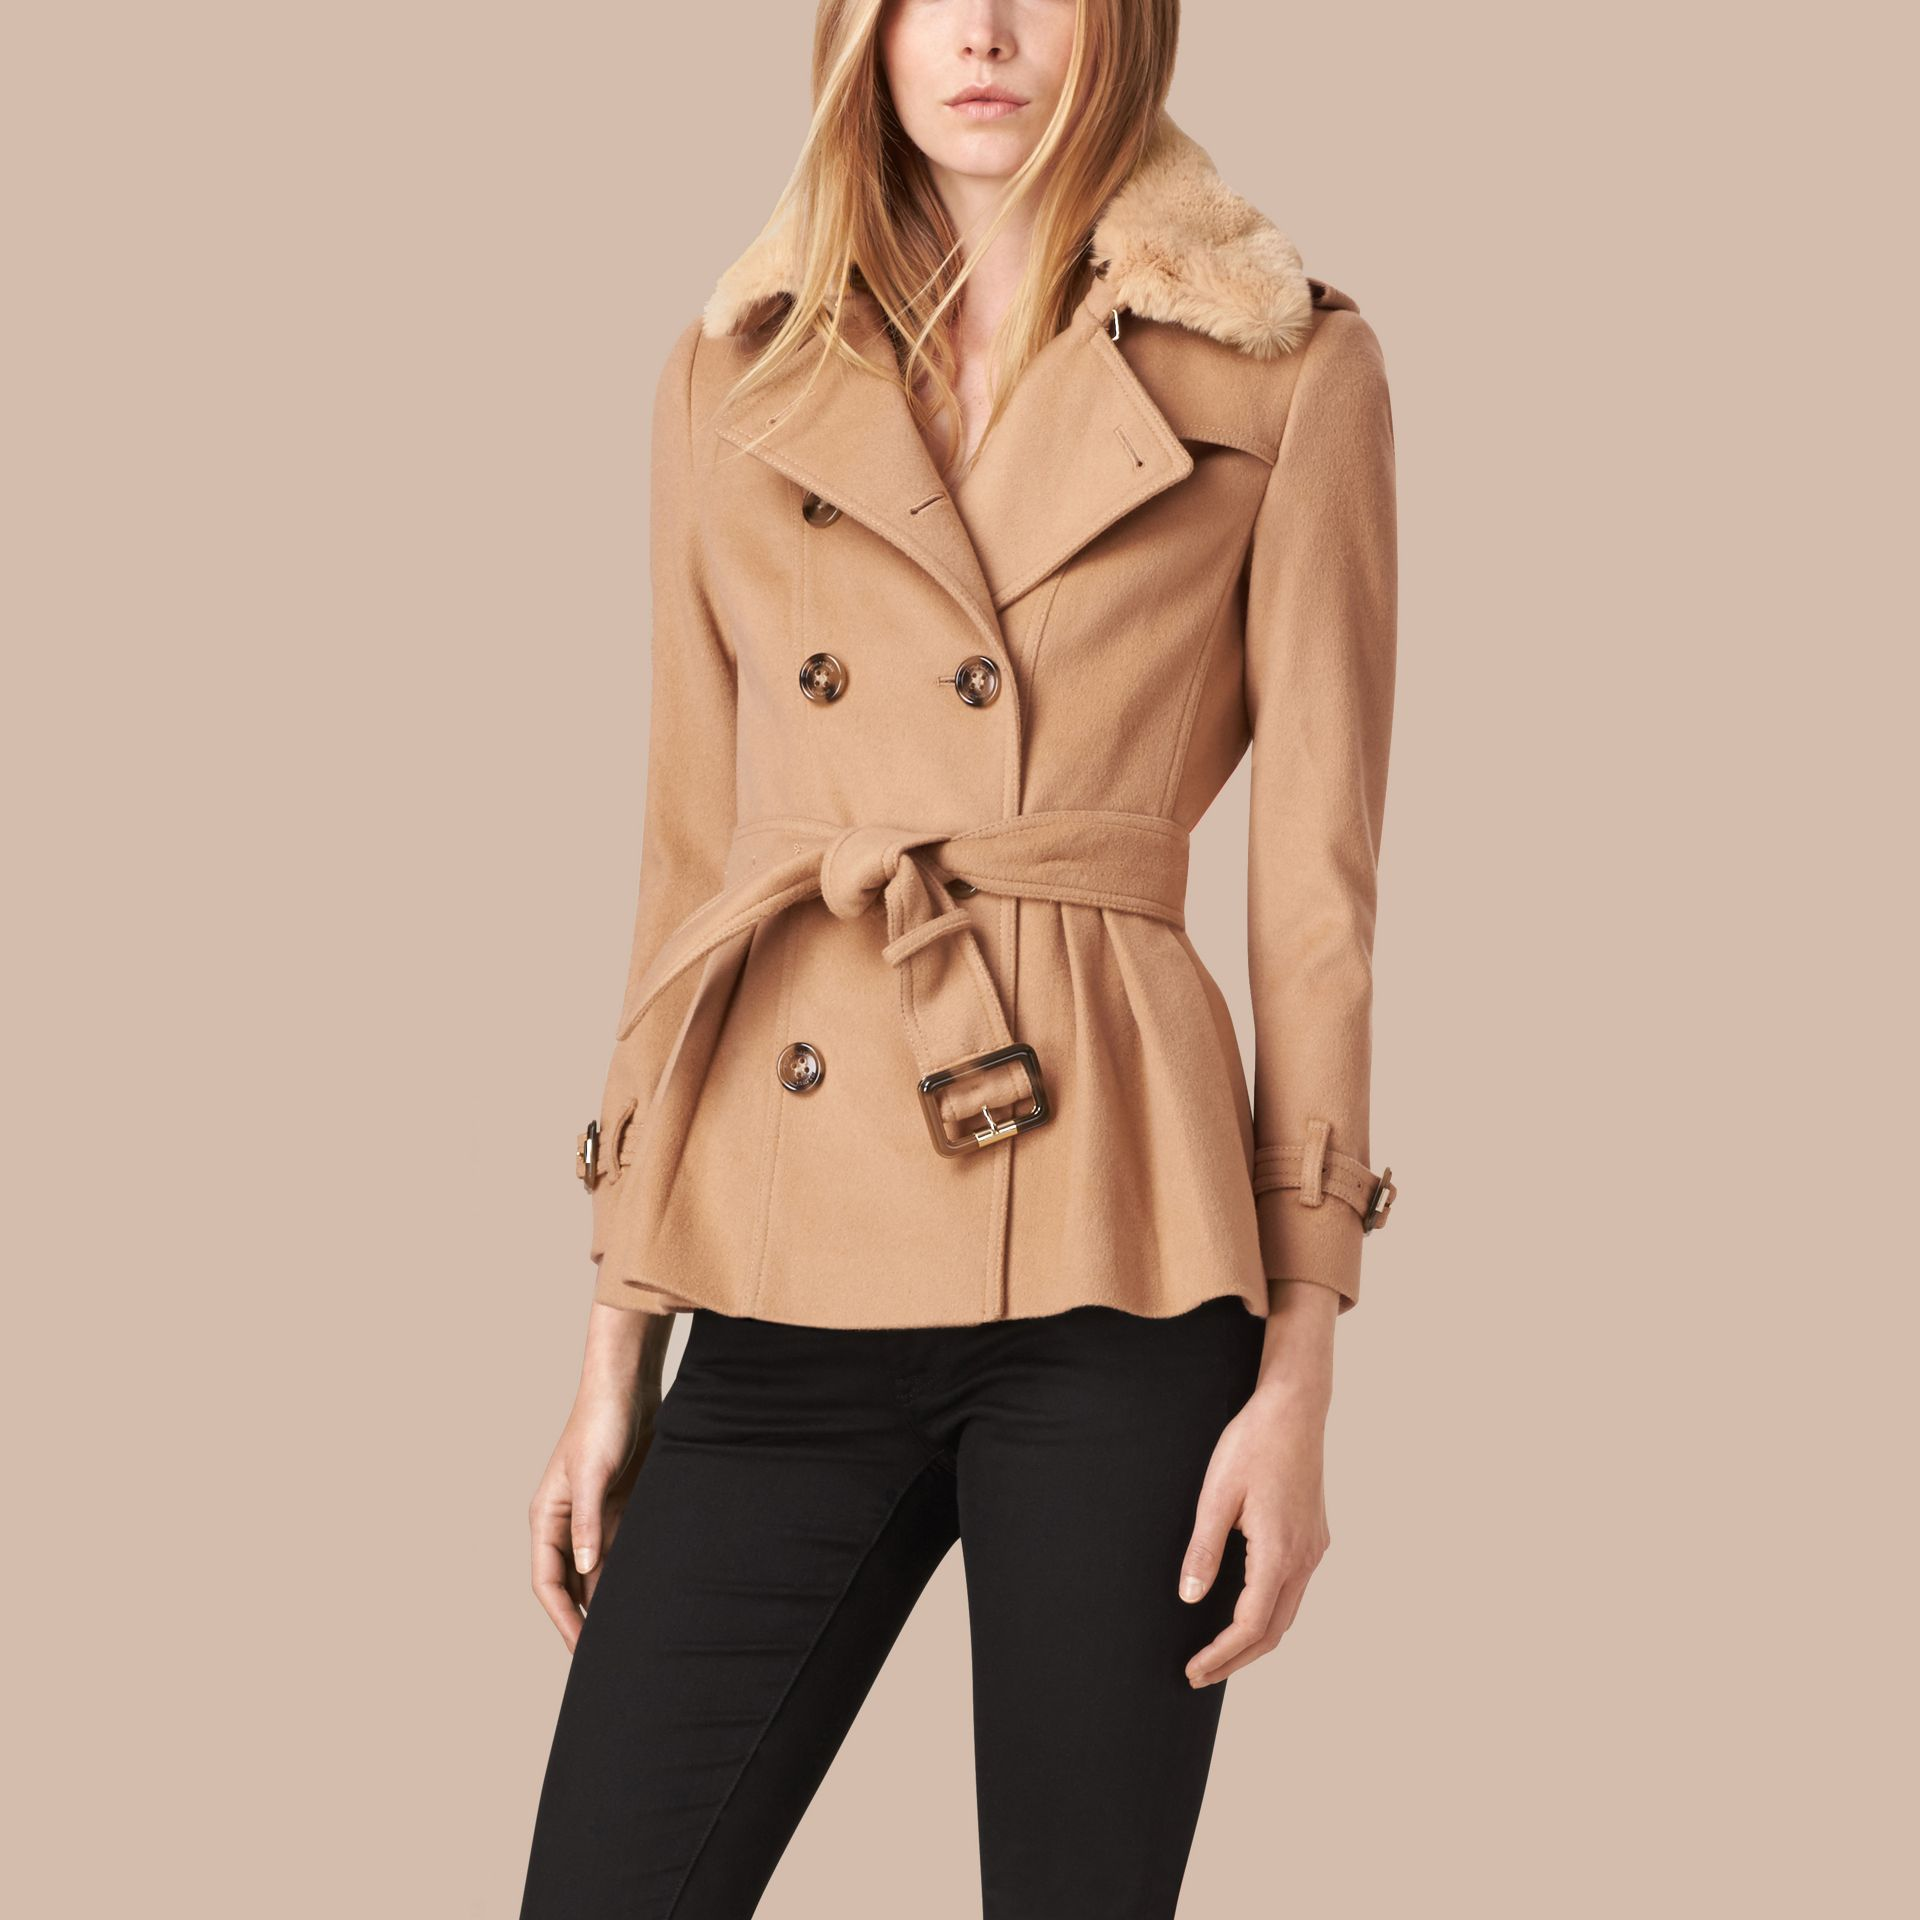 Camel Wool Cashmere Jacket with Detachable Rabbit Fur Collar - gallery image 6